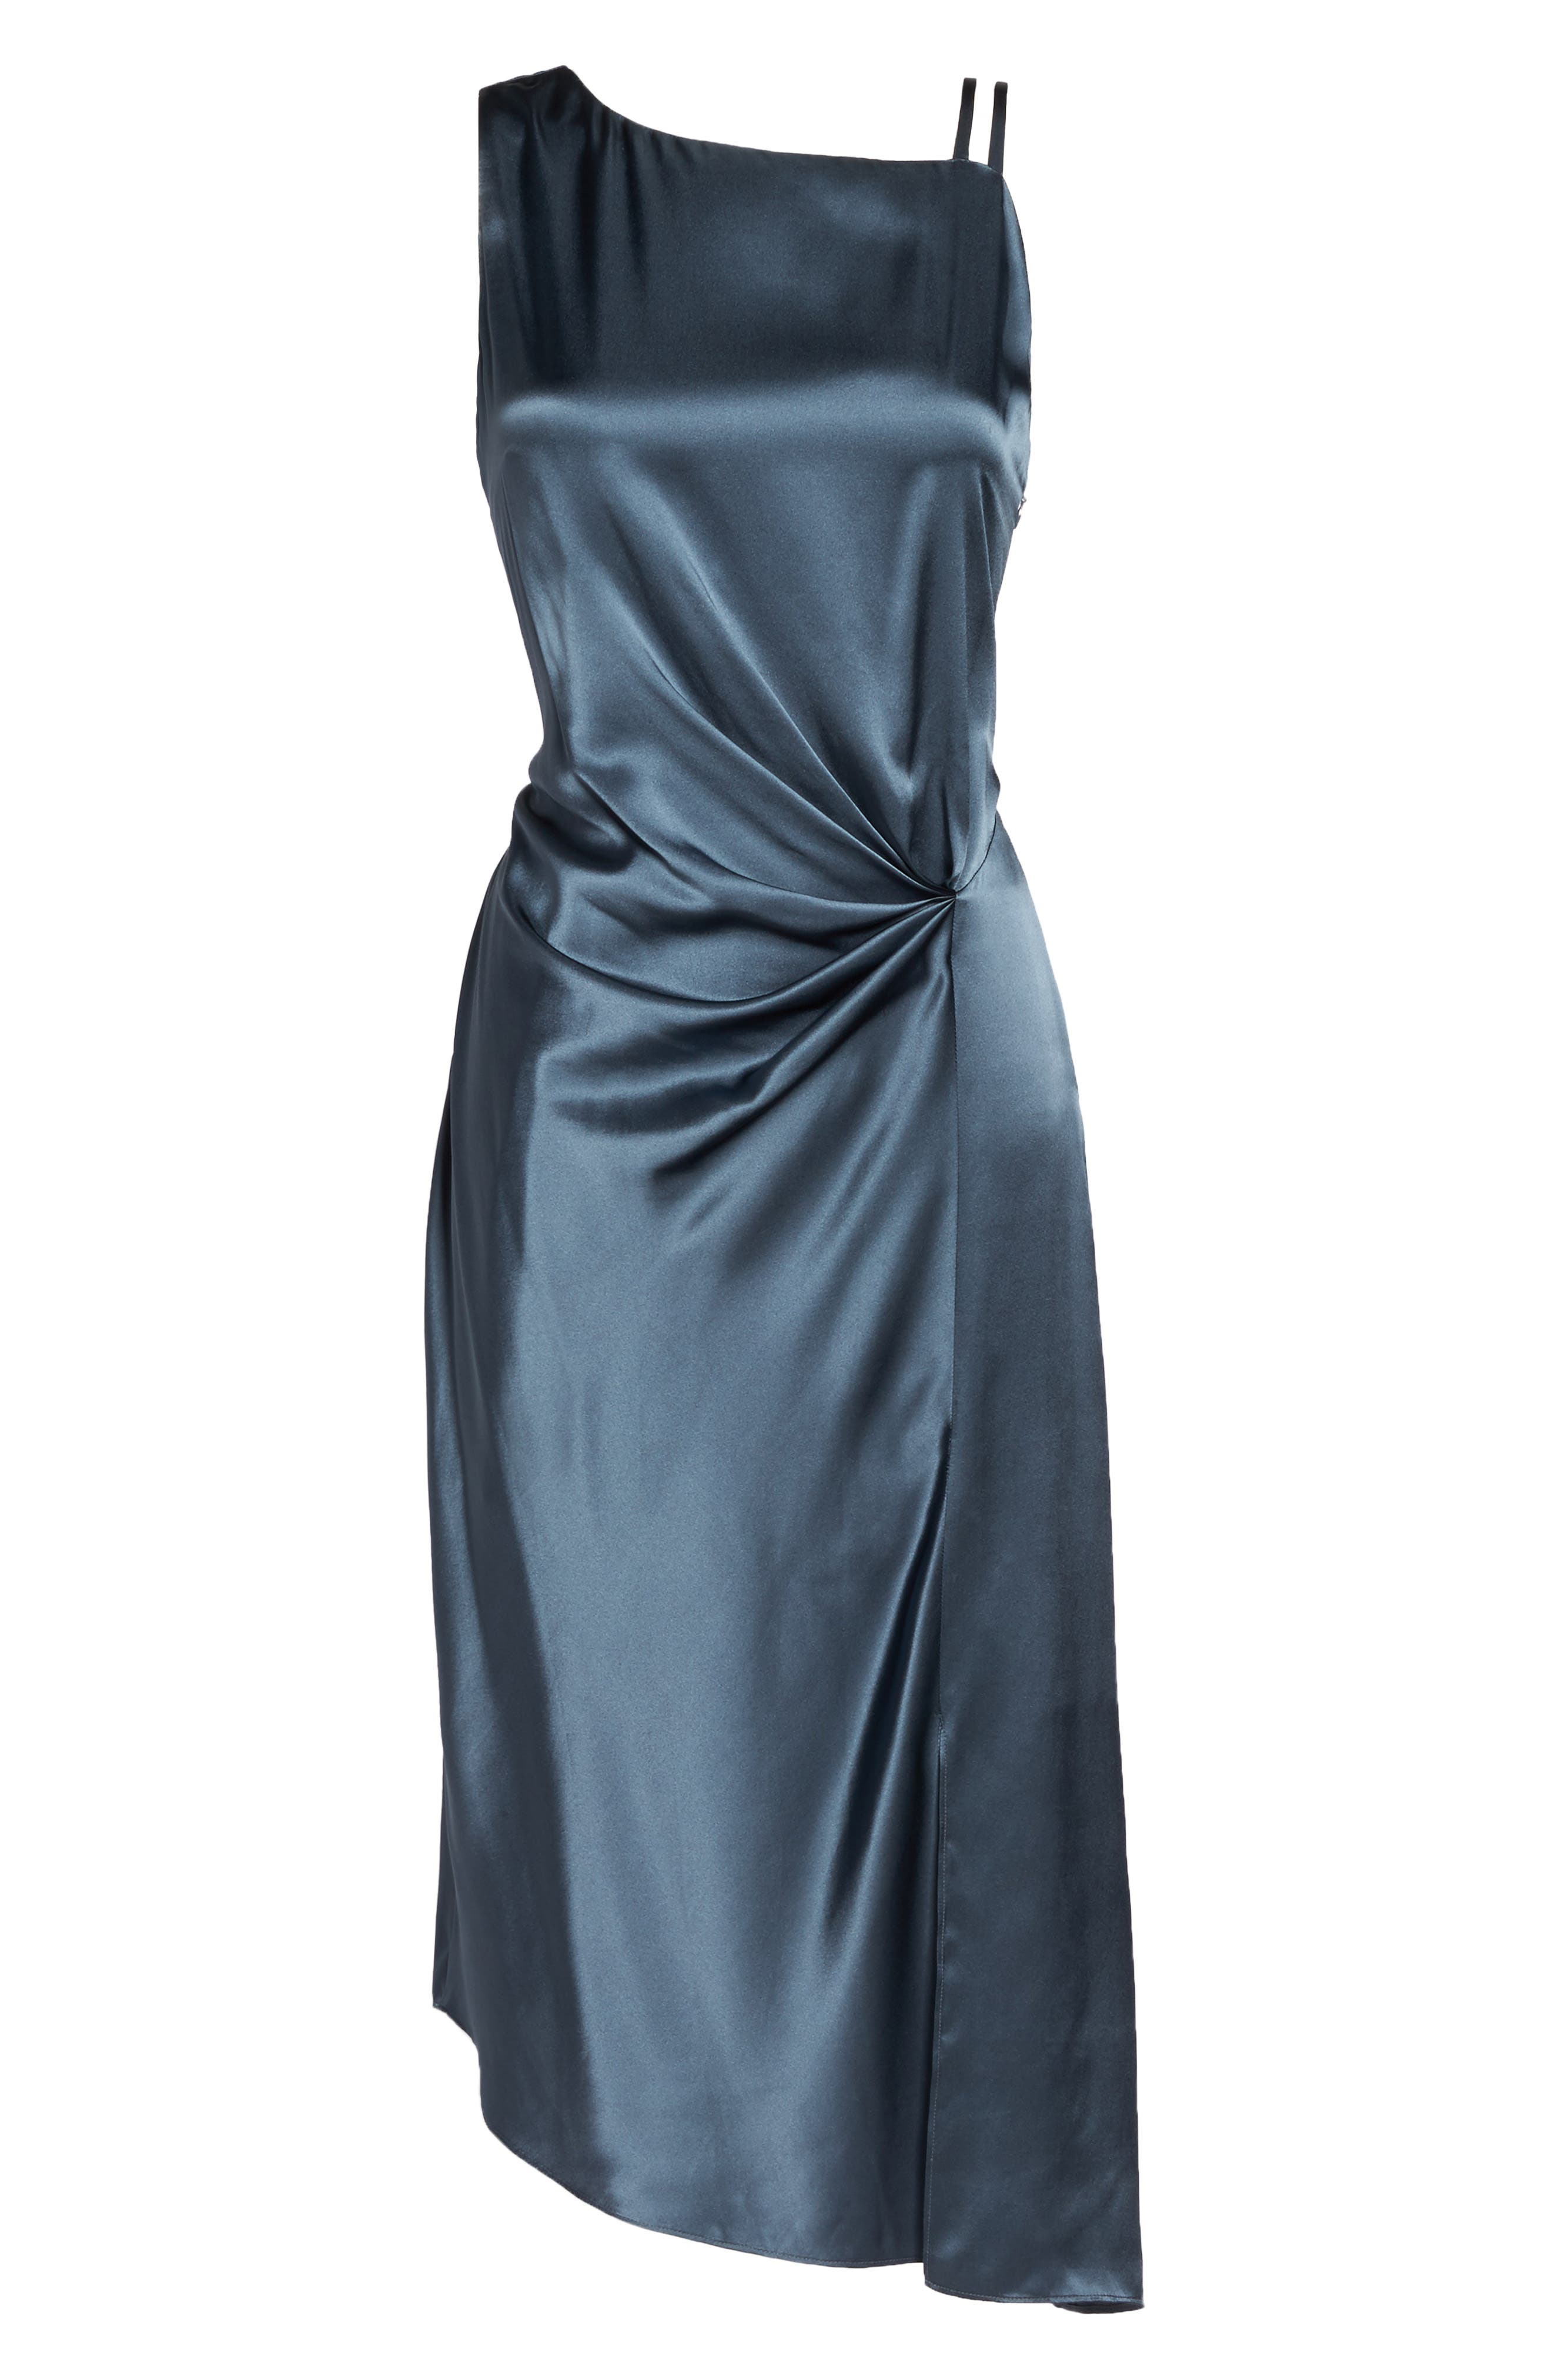 Ruched Satin Sheath Dress,                             Alternate thumbnail 6, color,                             451